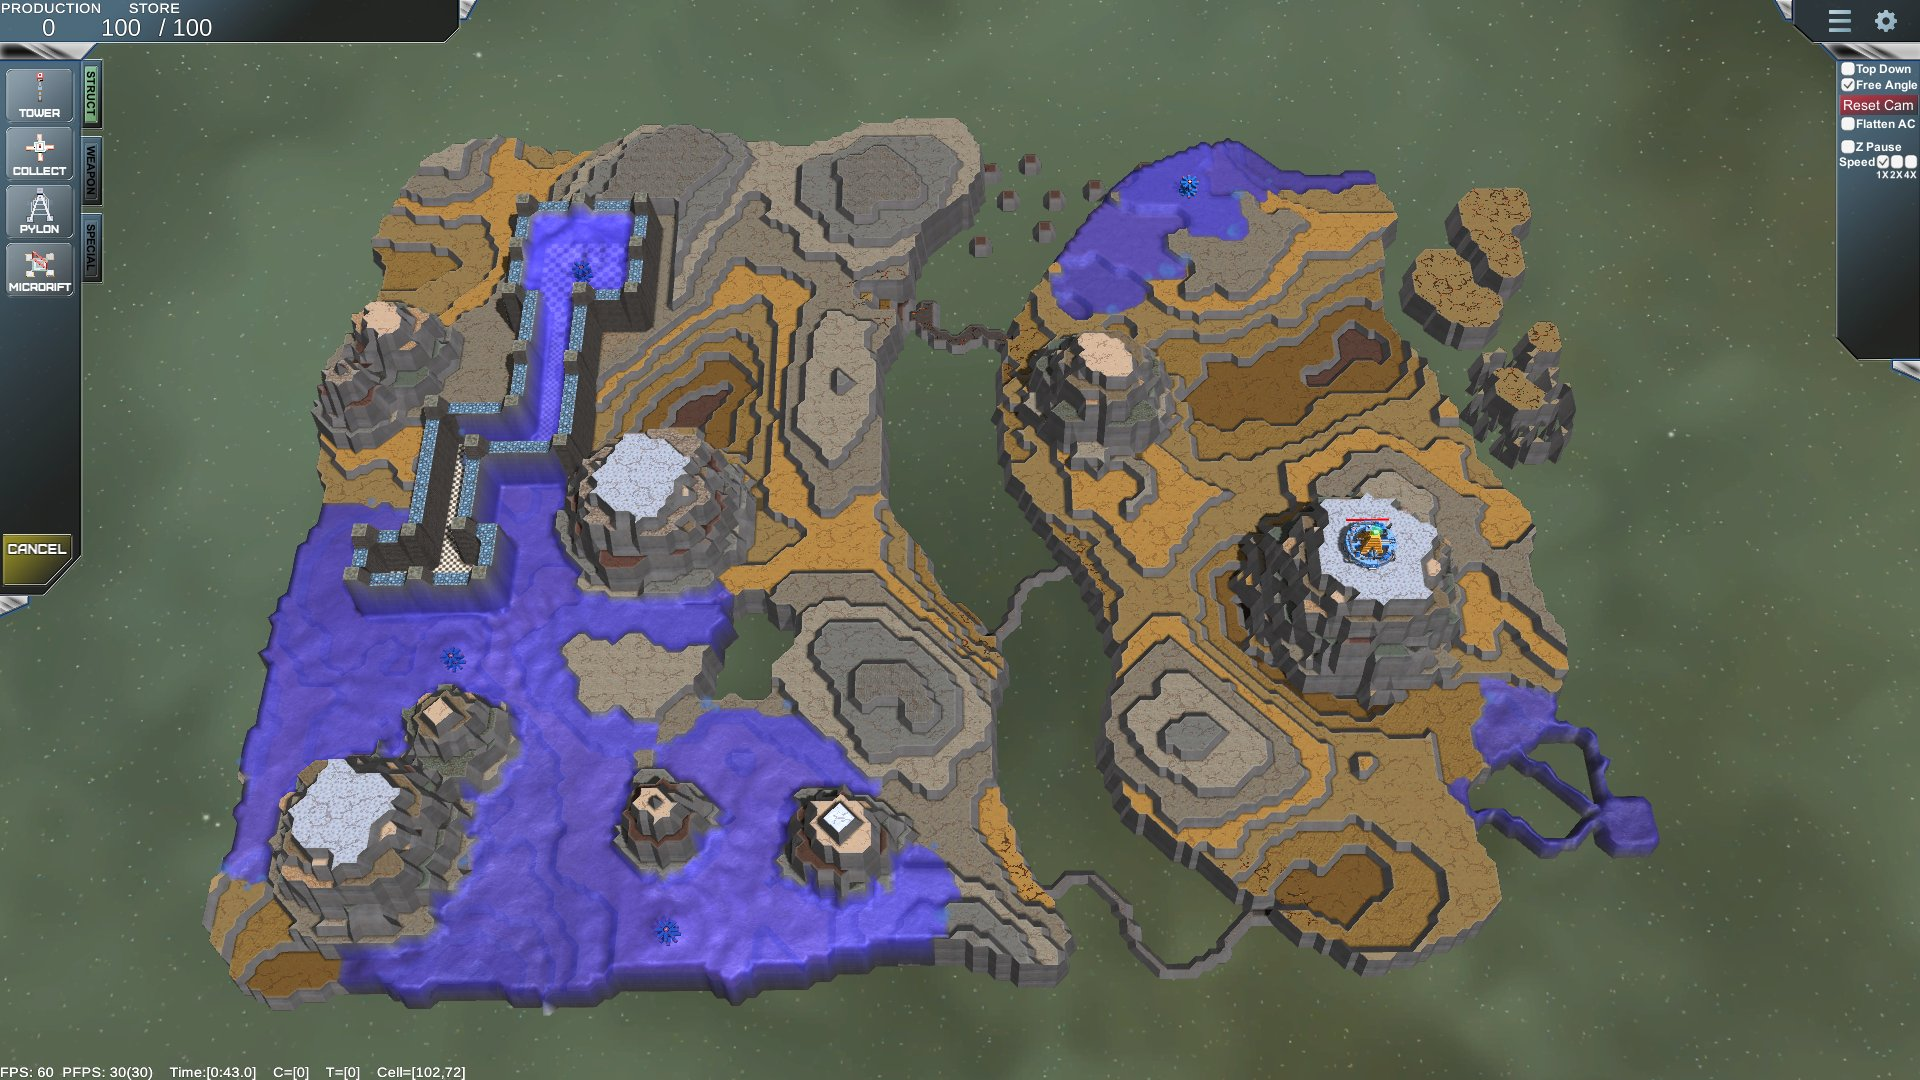 The statue inside below are some screen shots of a test map ive made it shows irregular terrain various textures applied to different areas with different scales gumiabroncs Image collections